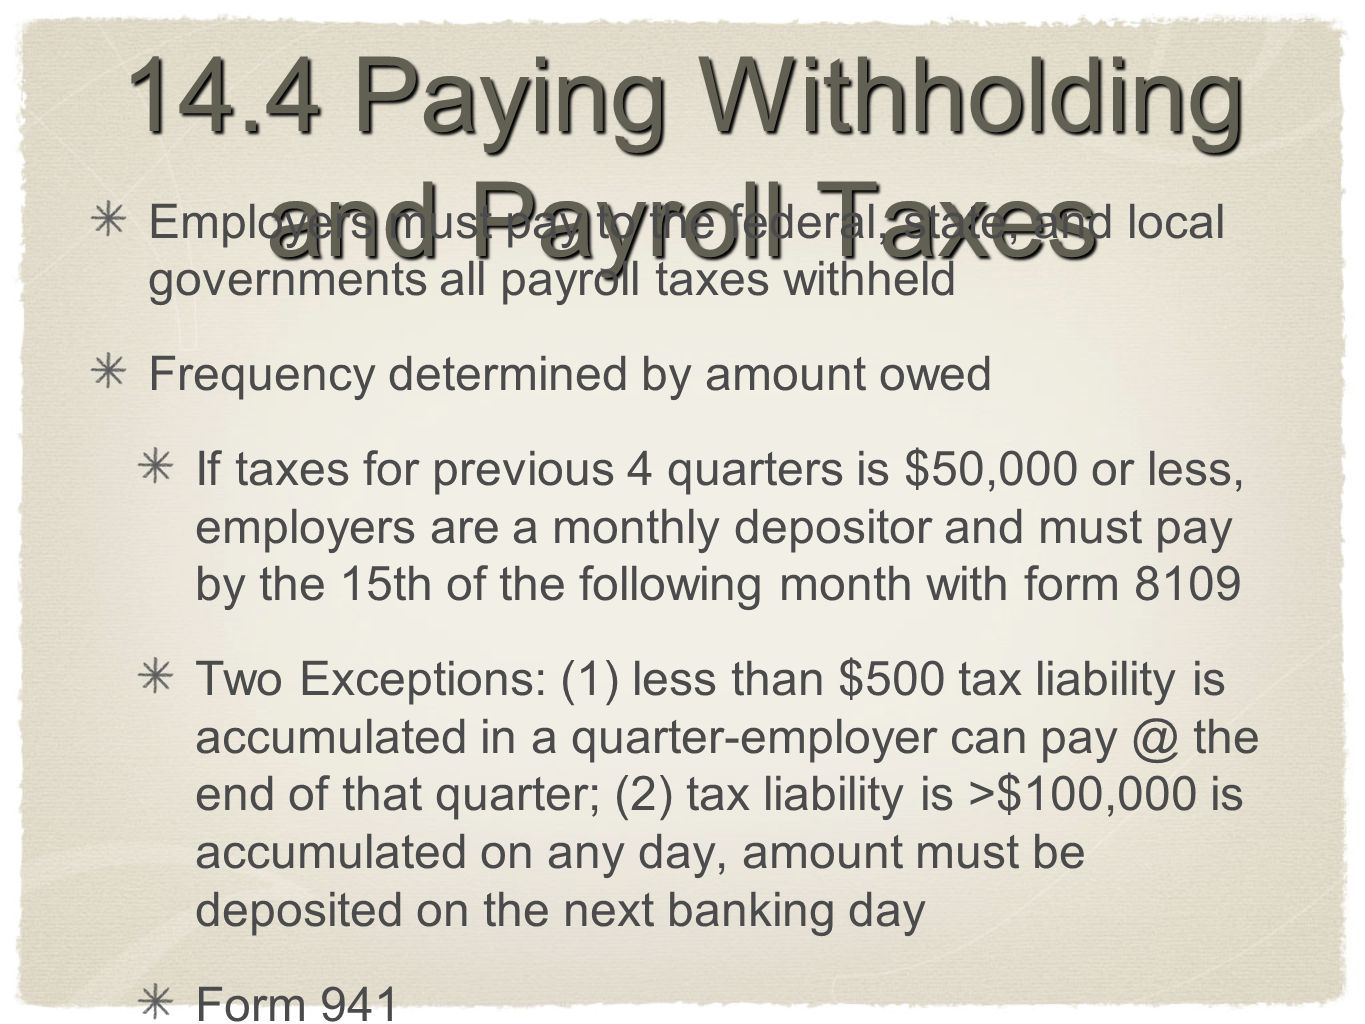 14.4 Paying Withholding and Payroll Taxes